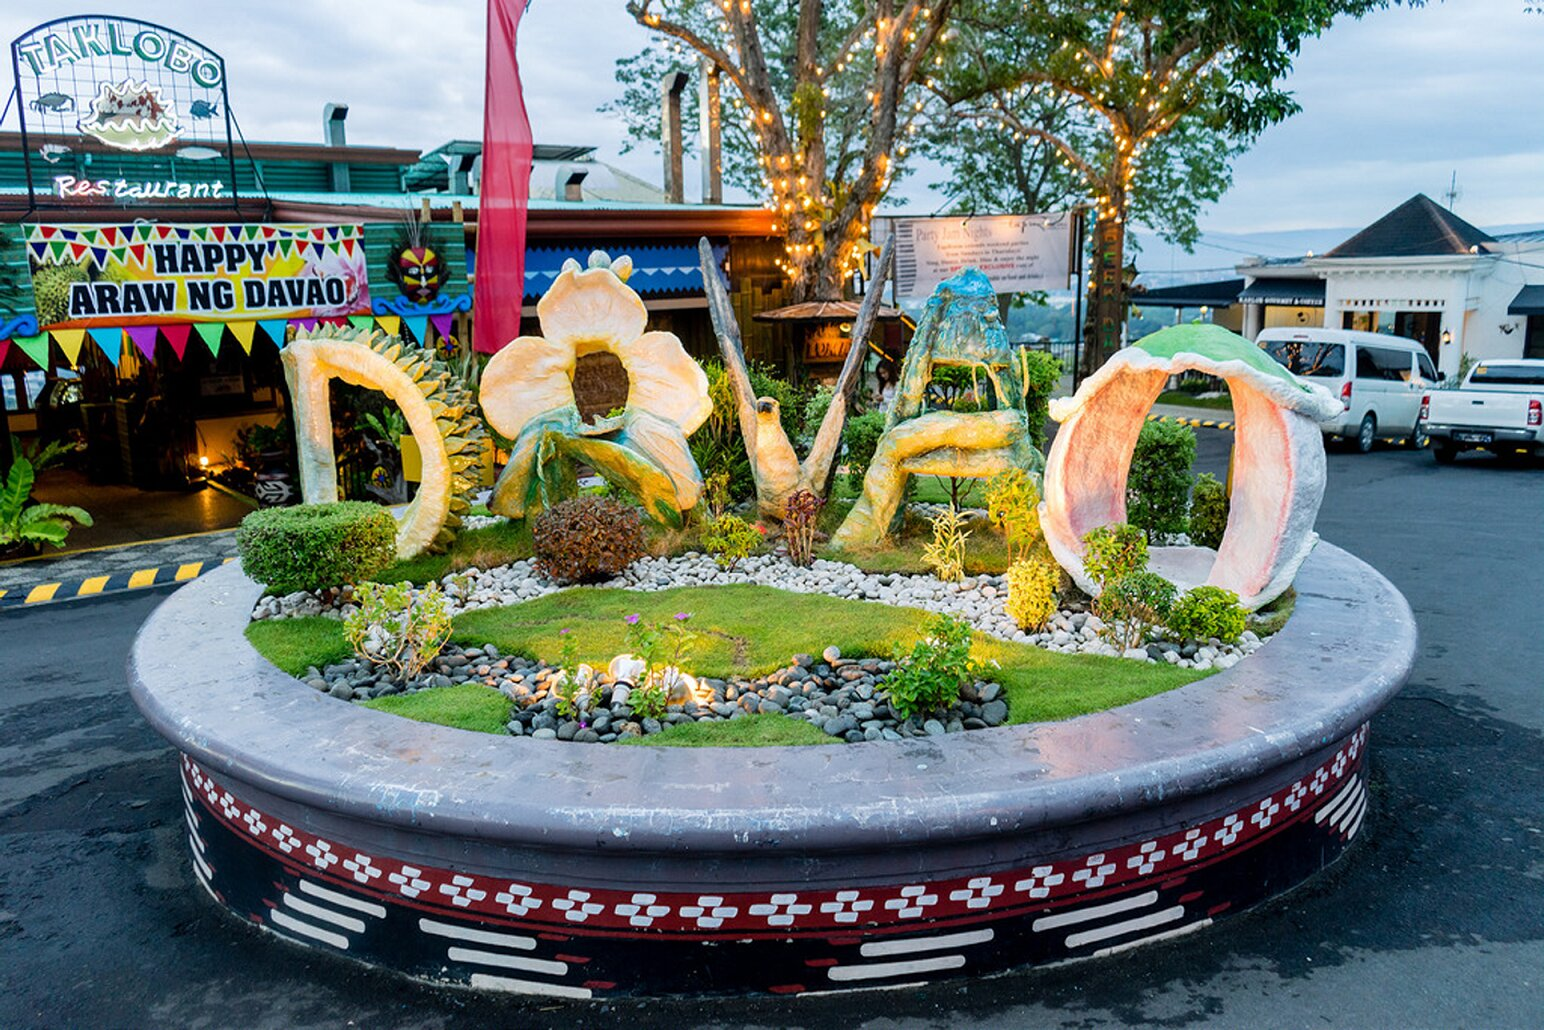 Davao City Attractions for foreigners in Philippines